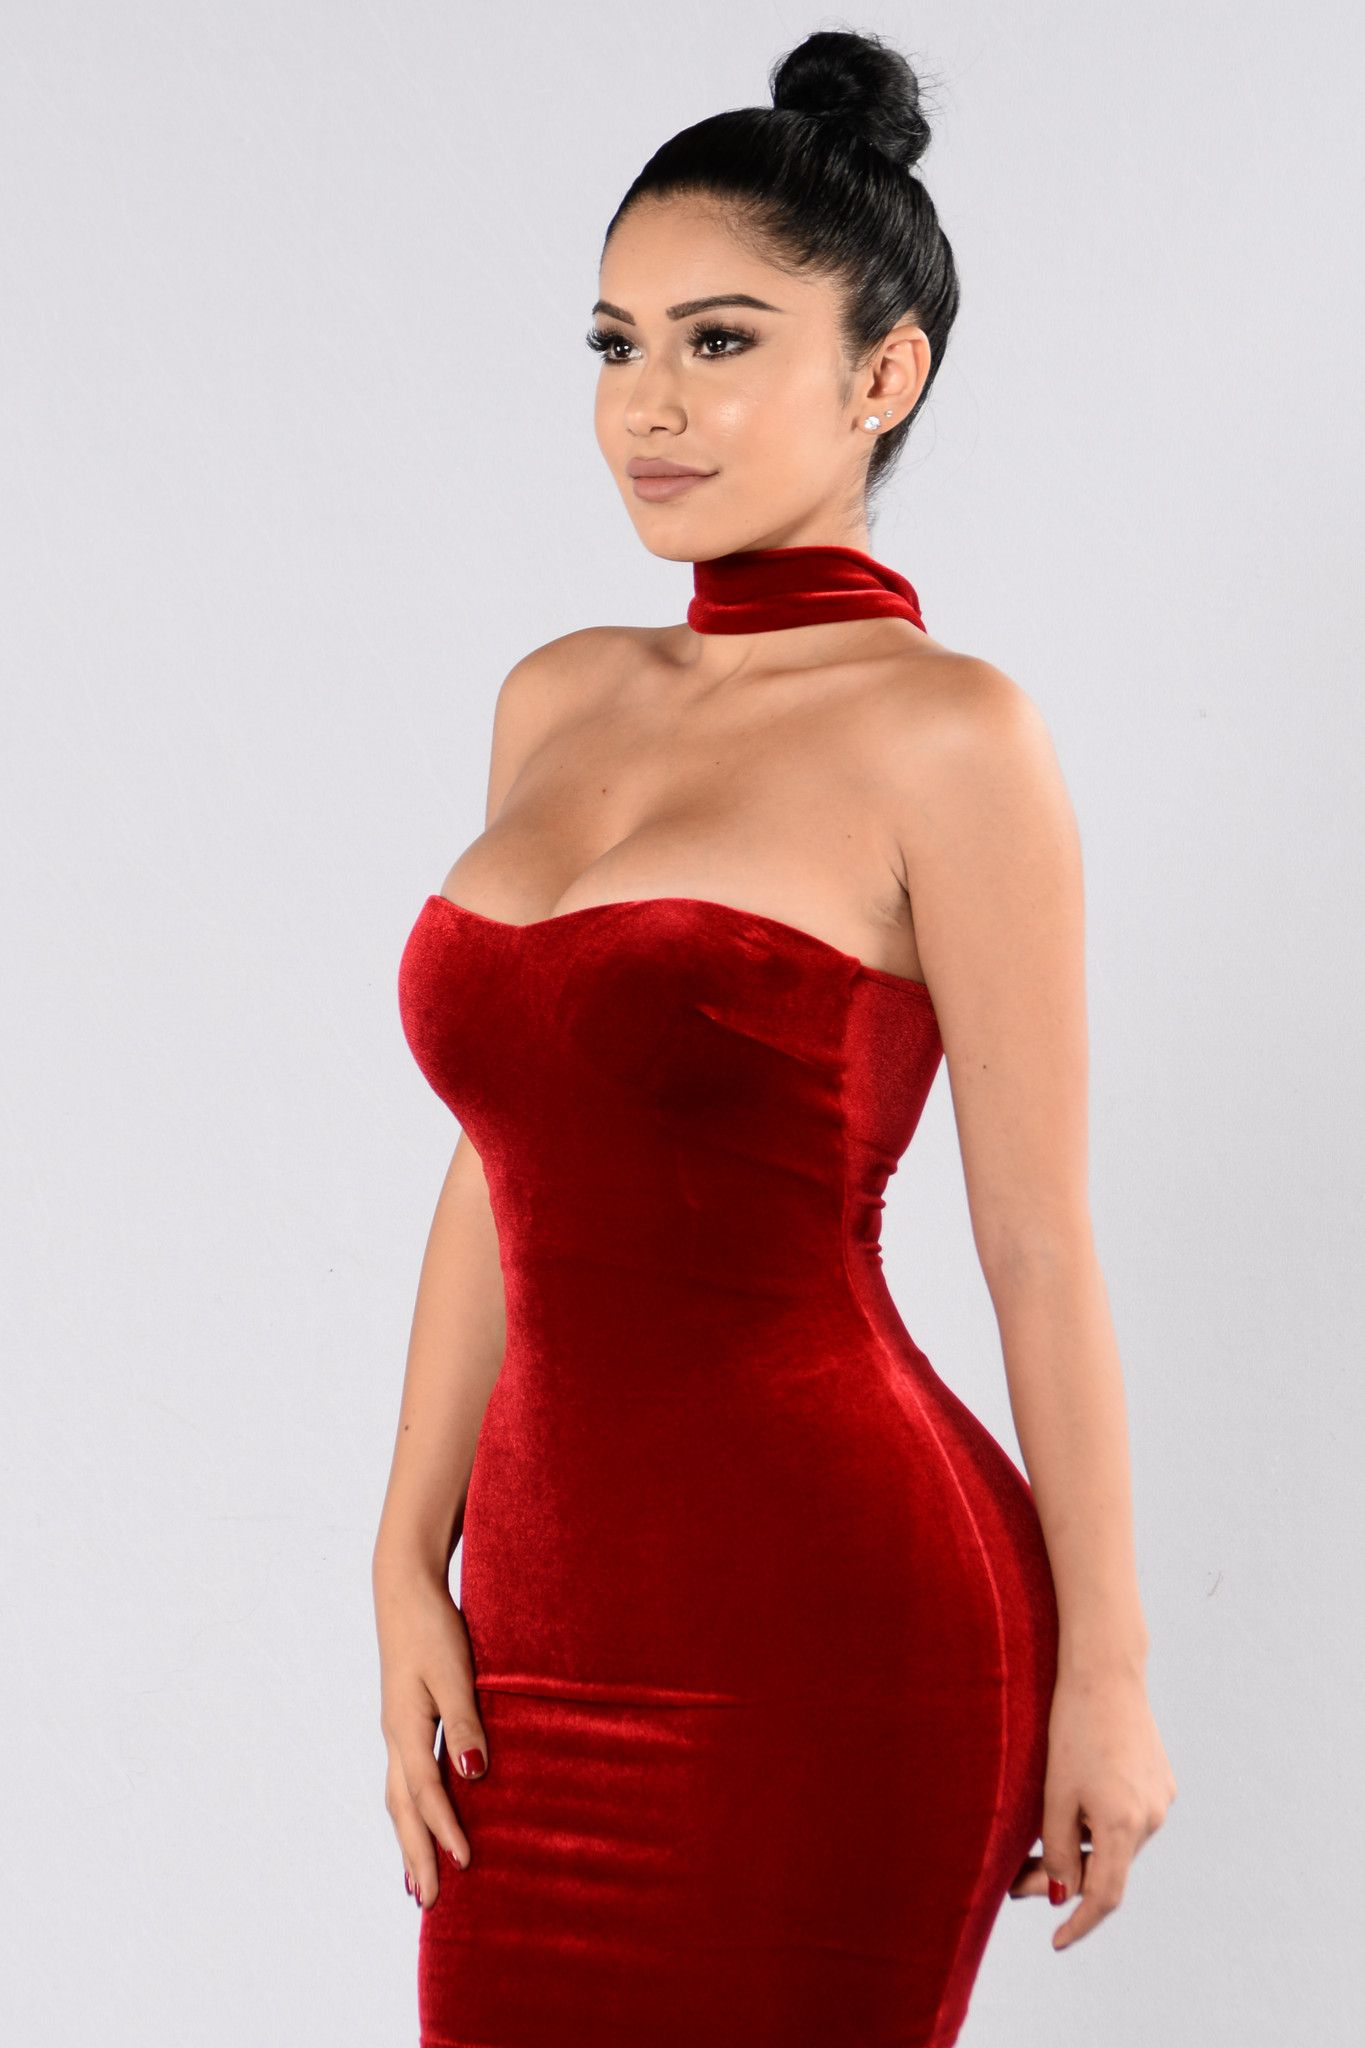 Available in Black and Red Velvet Choker Dress Tube Style Zipper Back Knee  Length Lined Made in USA 90% Polyester 10% Spandex